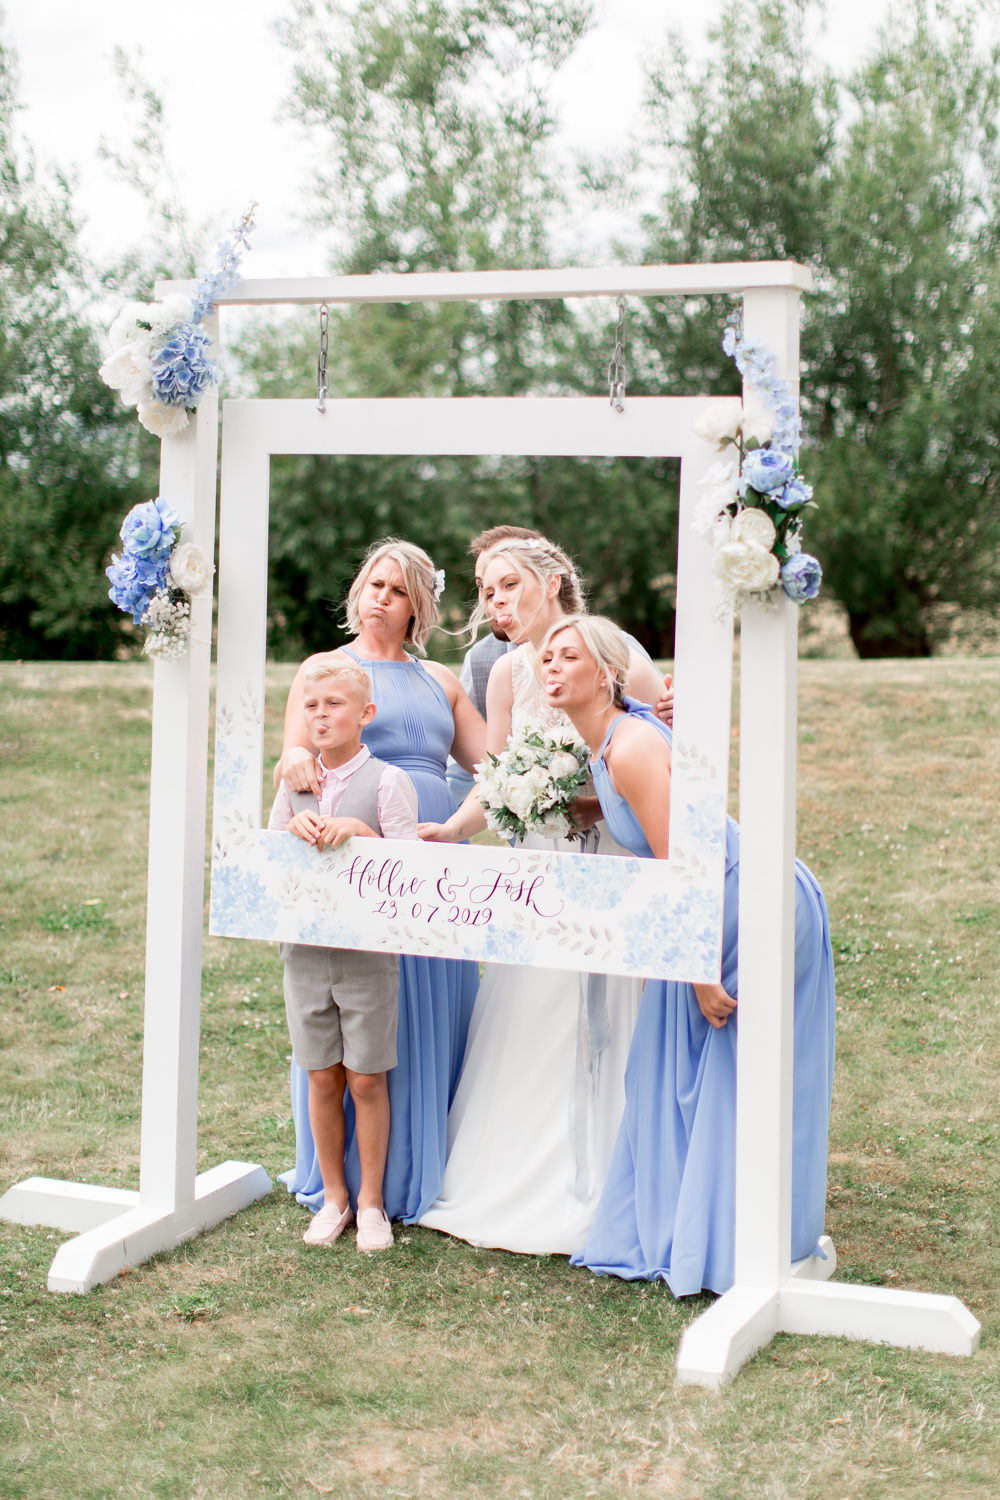 Photo Booth Backdrop Cut Out Frame Almonry Barn Wedding Kerry Bartlett Photography